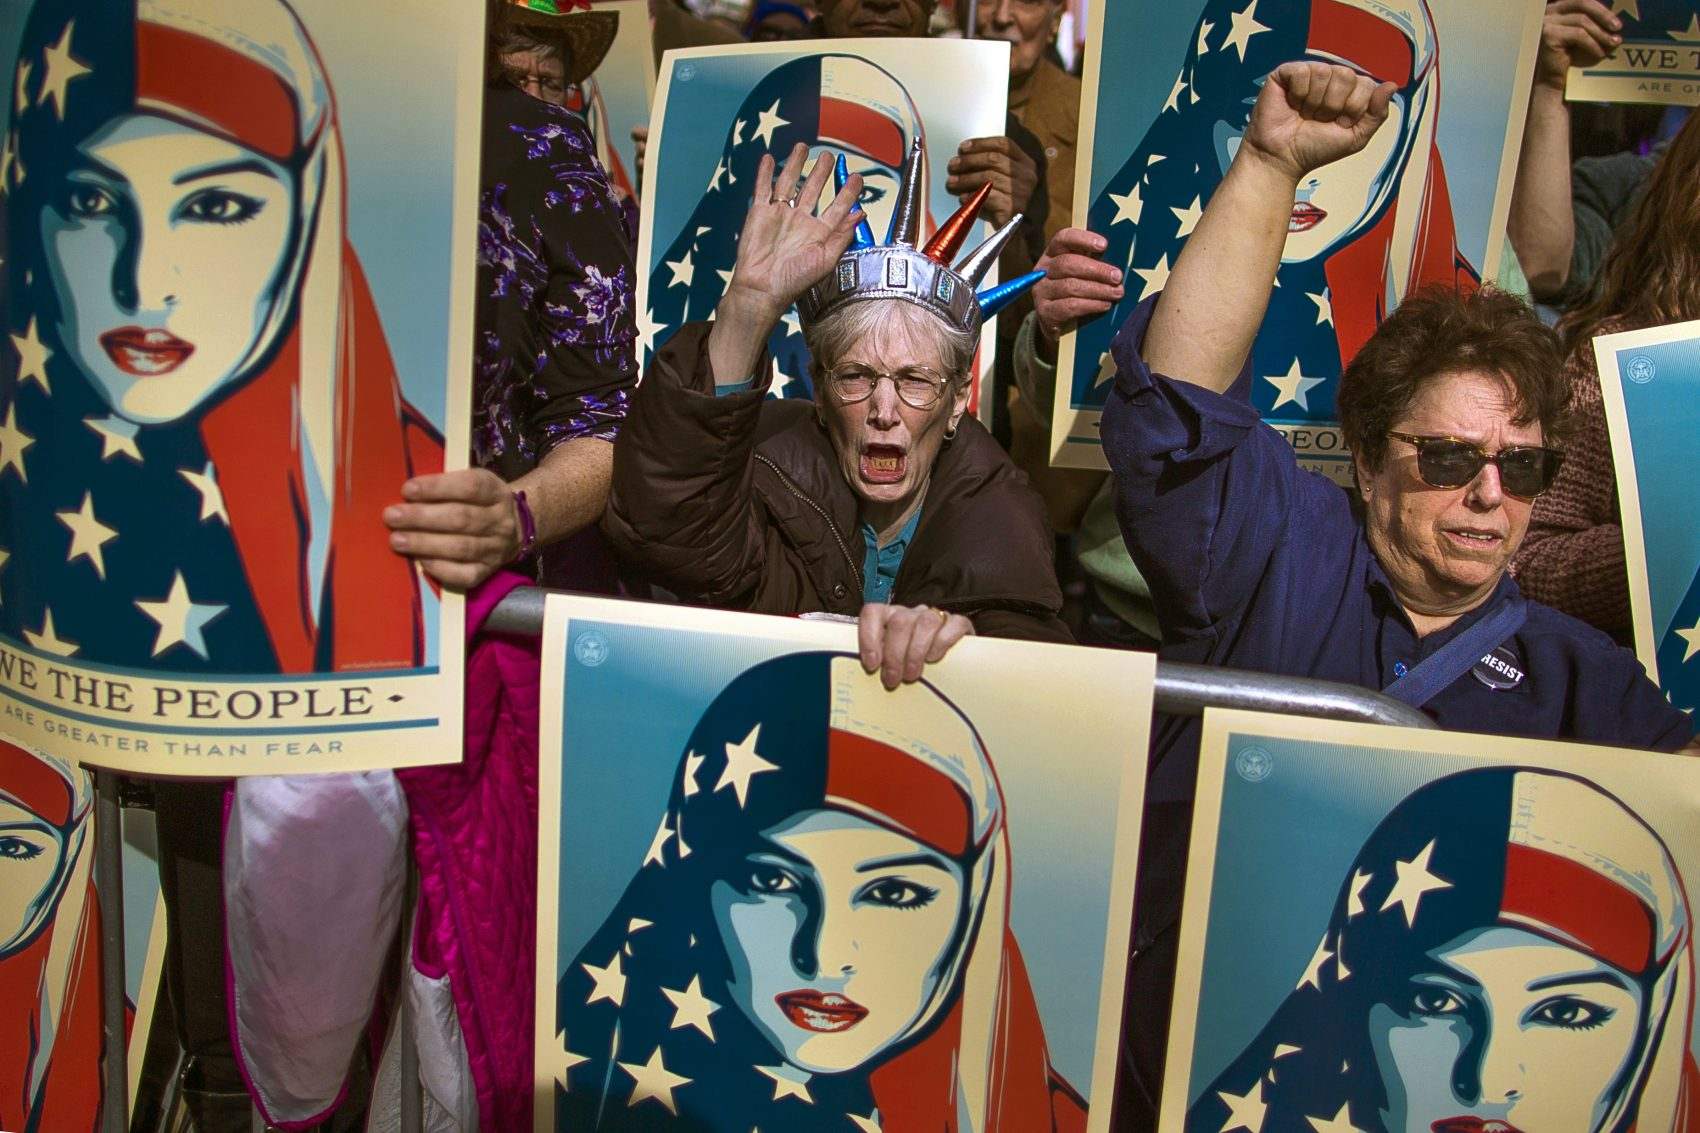 On Feb. 19, 2017, people carry posters during a rally against President Donald Trump's first executive order banning travel from seven Muslim-majority nations, in New York's Times Square. (Andres Kudacki/AP)